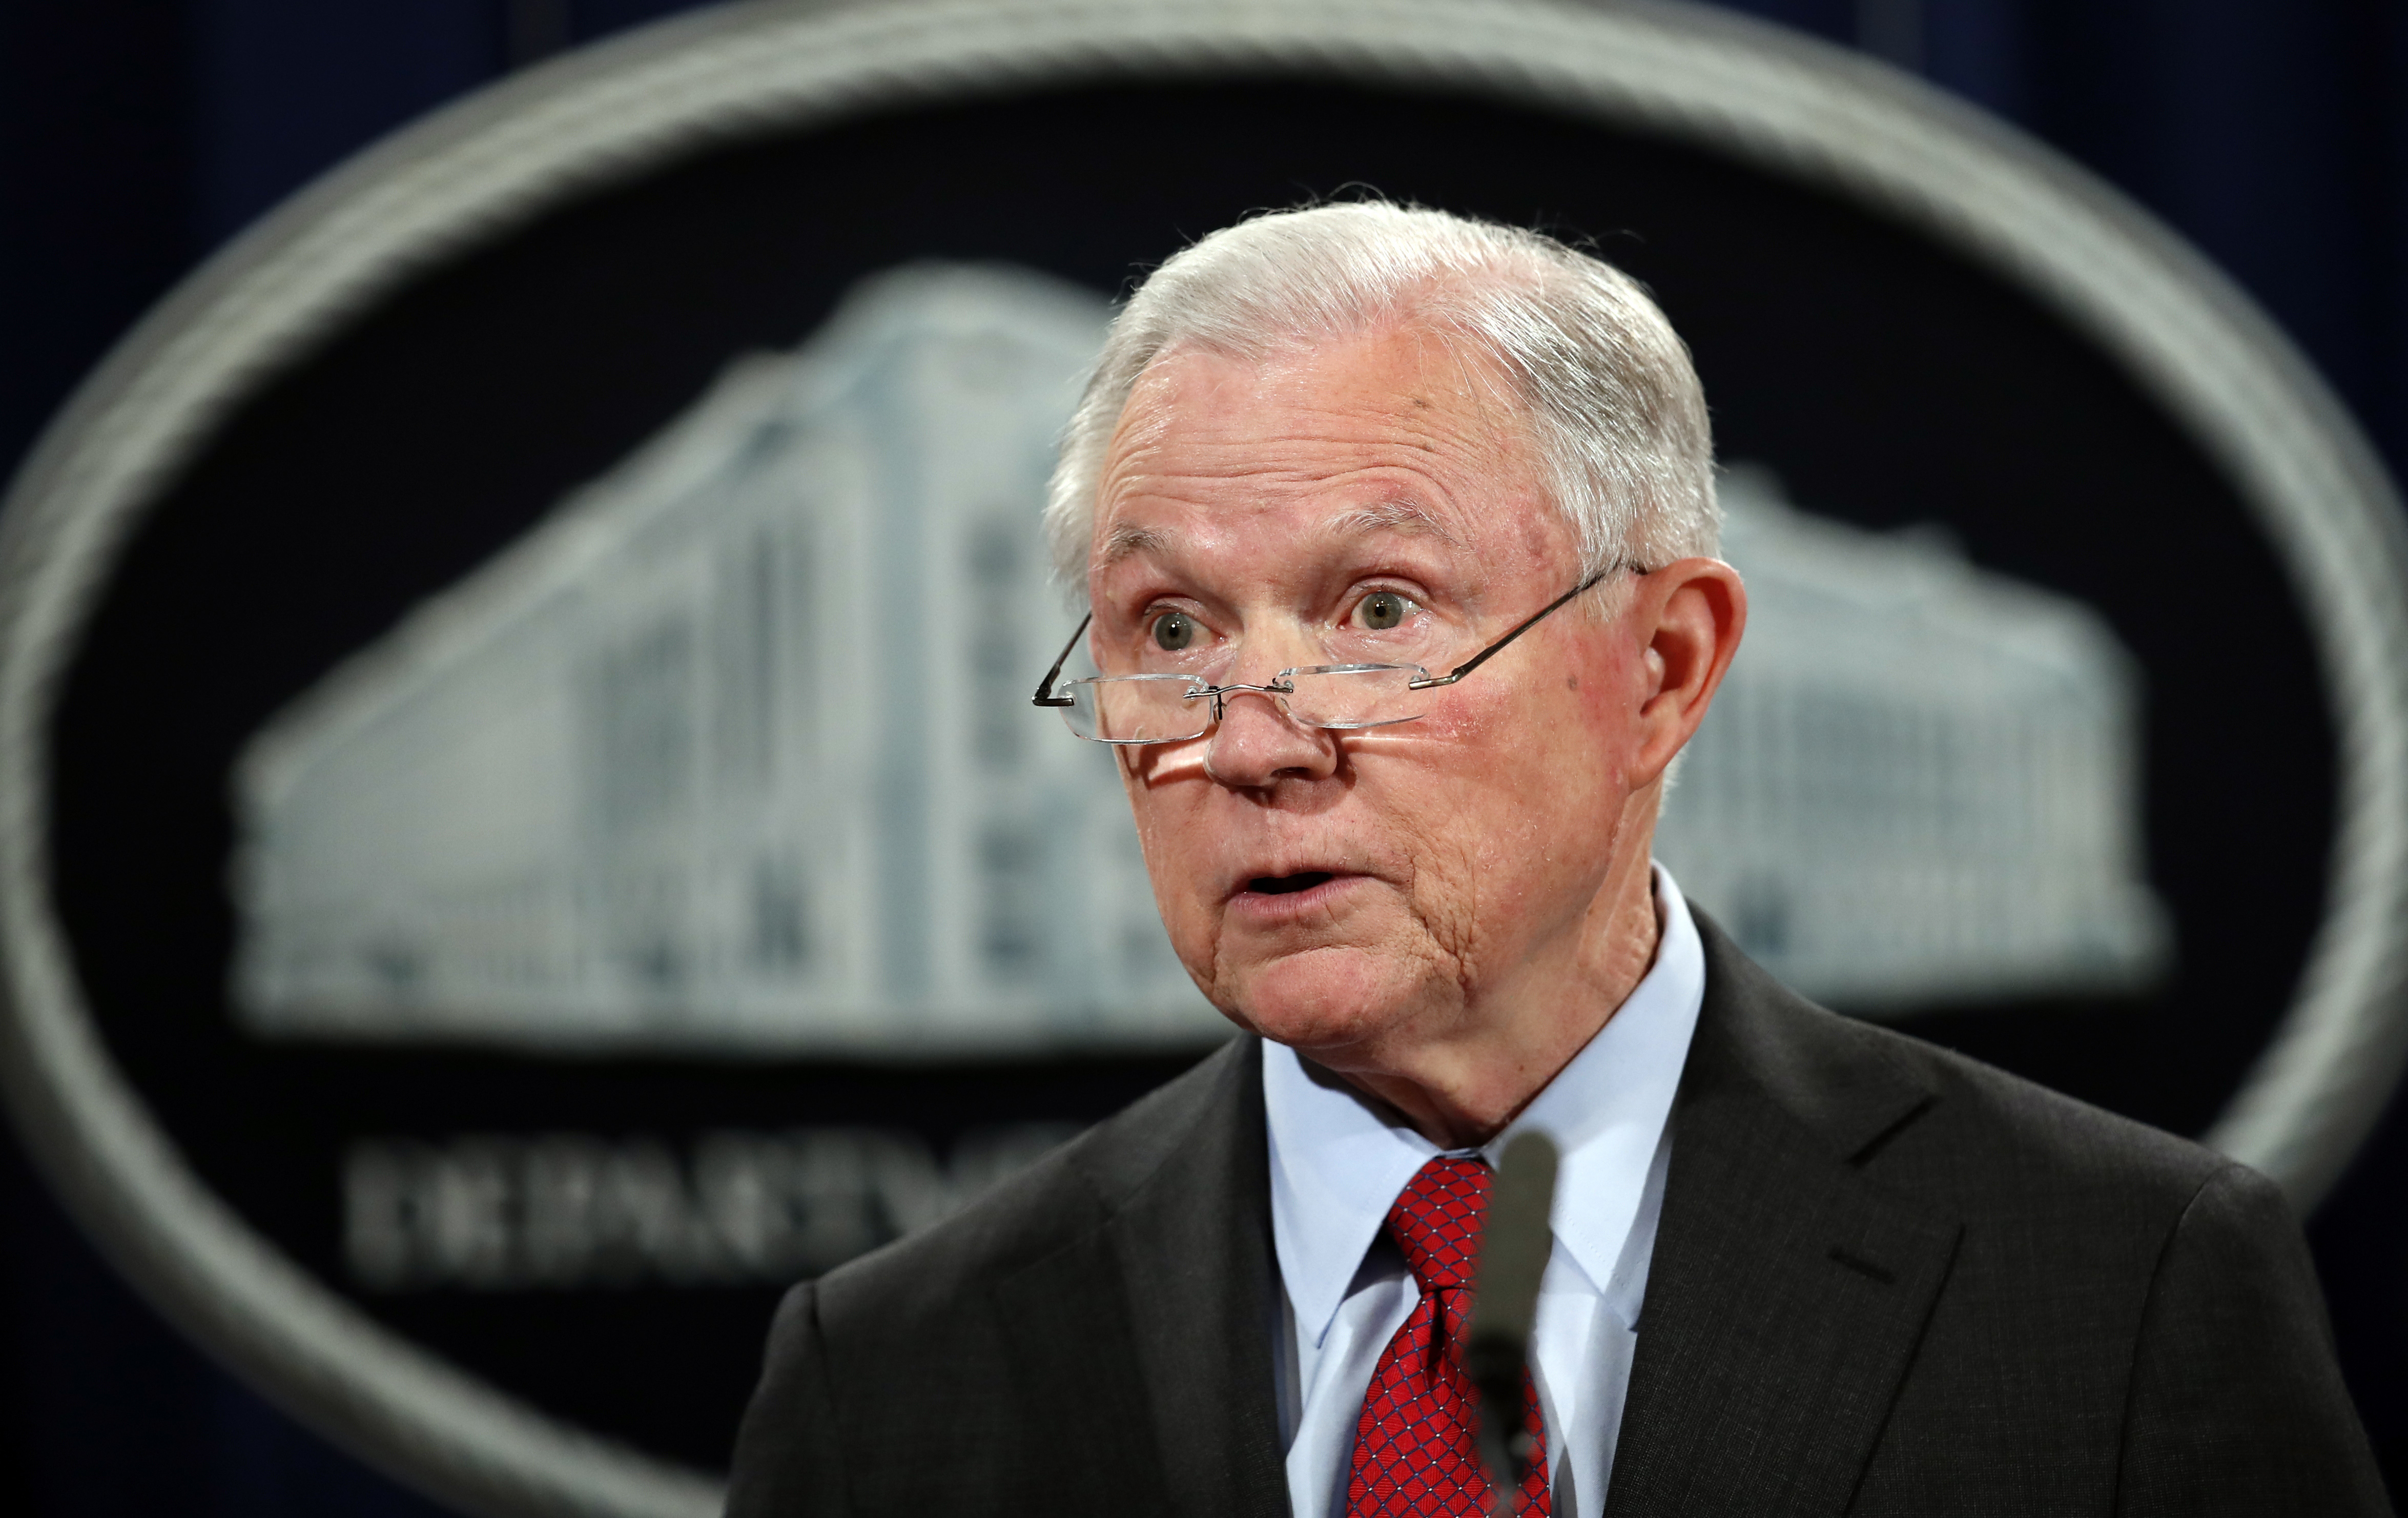 United States Attorney General Jeff Sessions speaks during a news conference at the Justice Department in Washington.